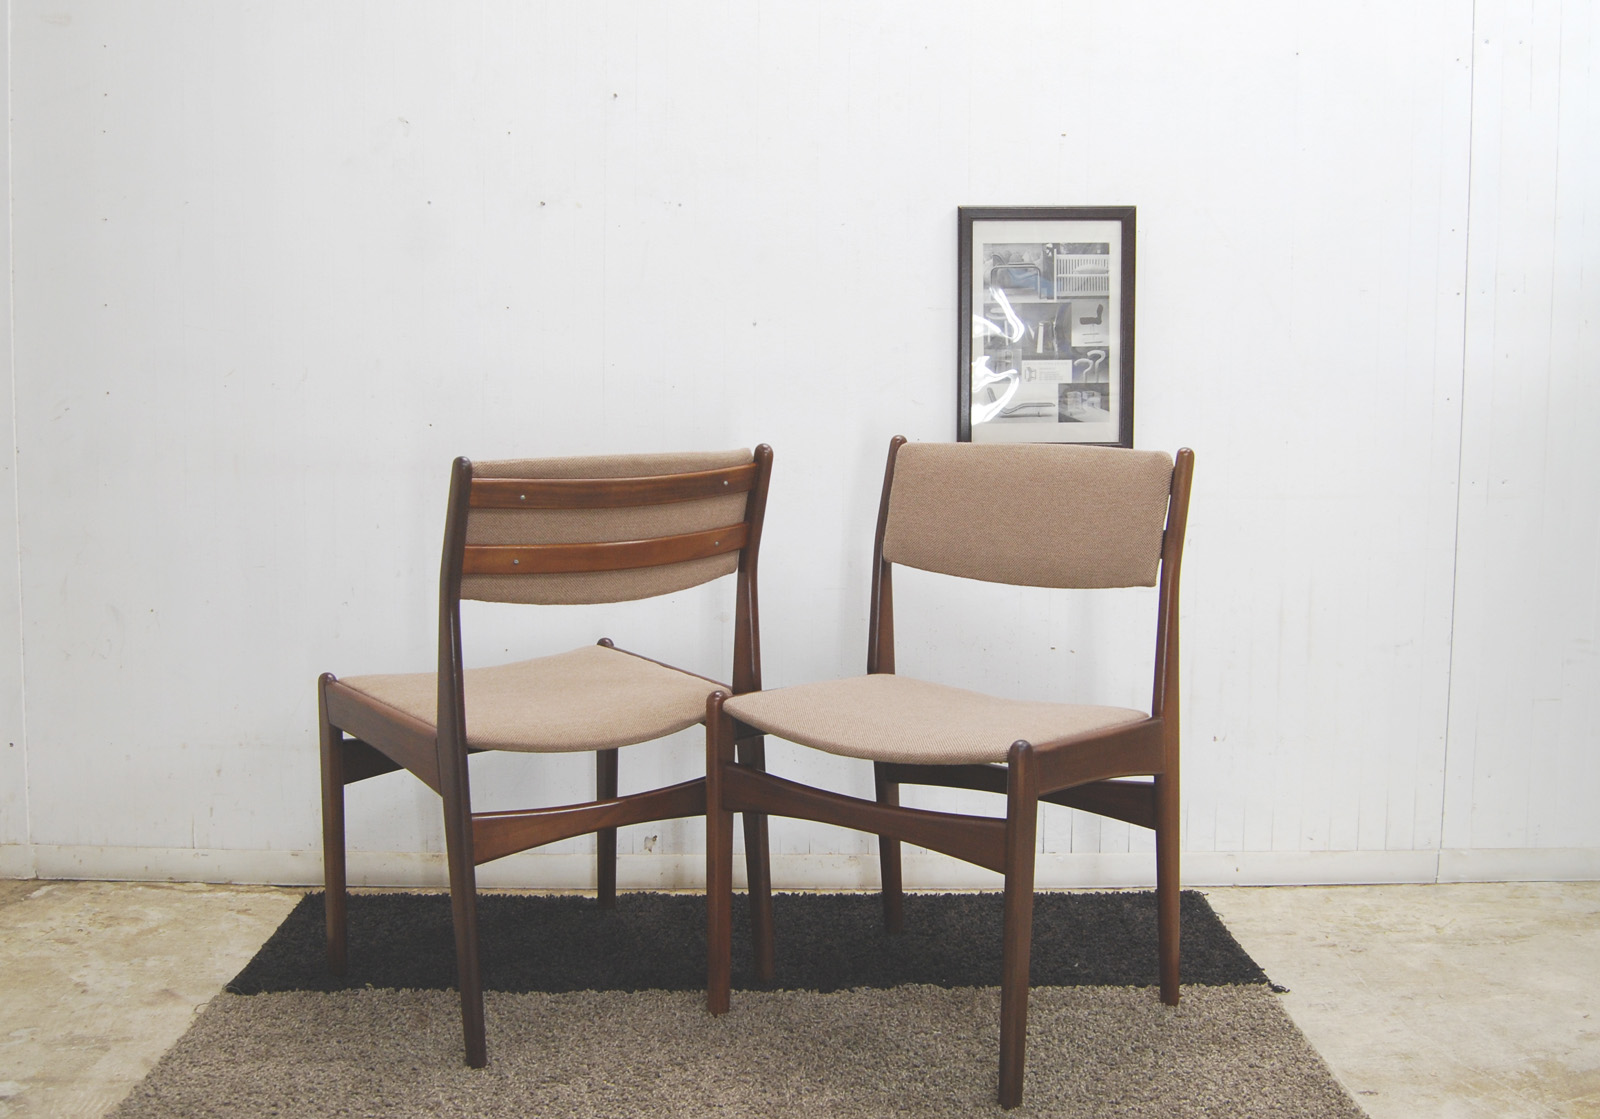 Poul M Volther Dining Chair Frem Rojle 2 Chairs Set Nordic Denmark